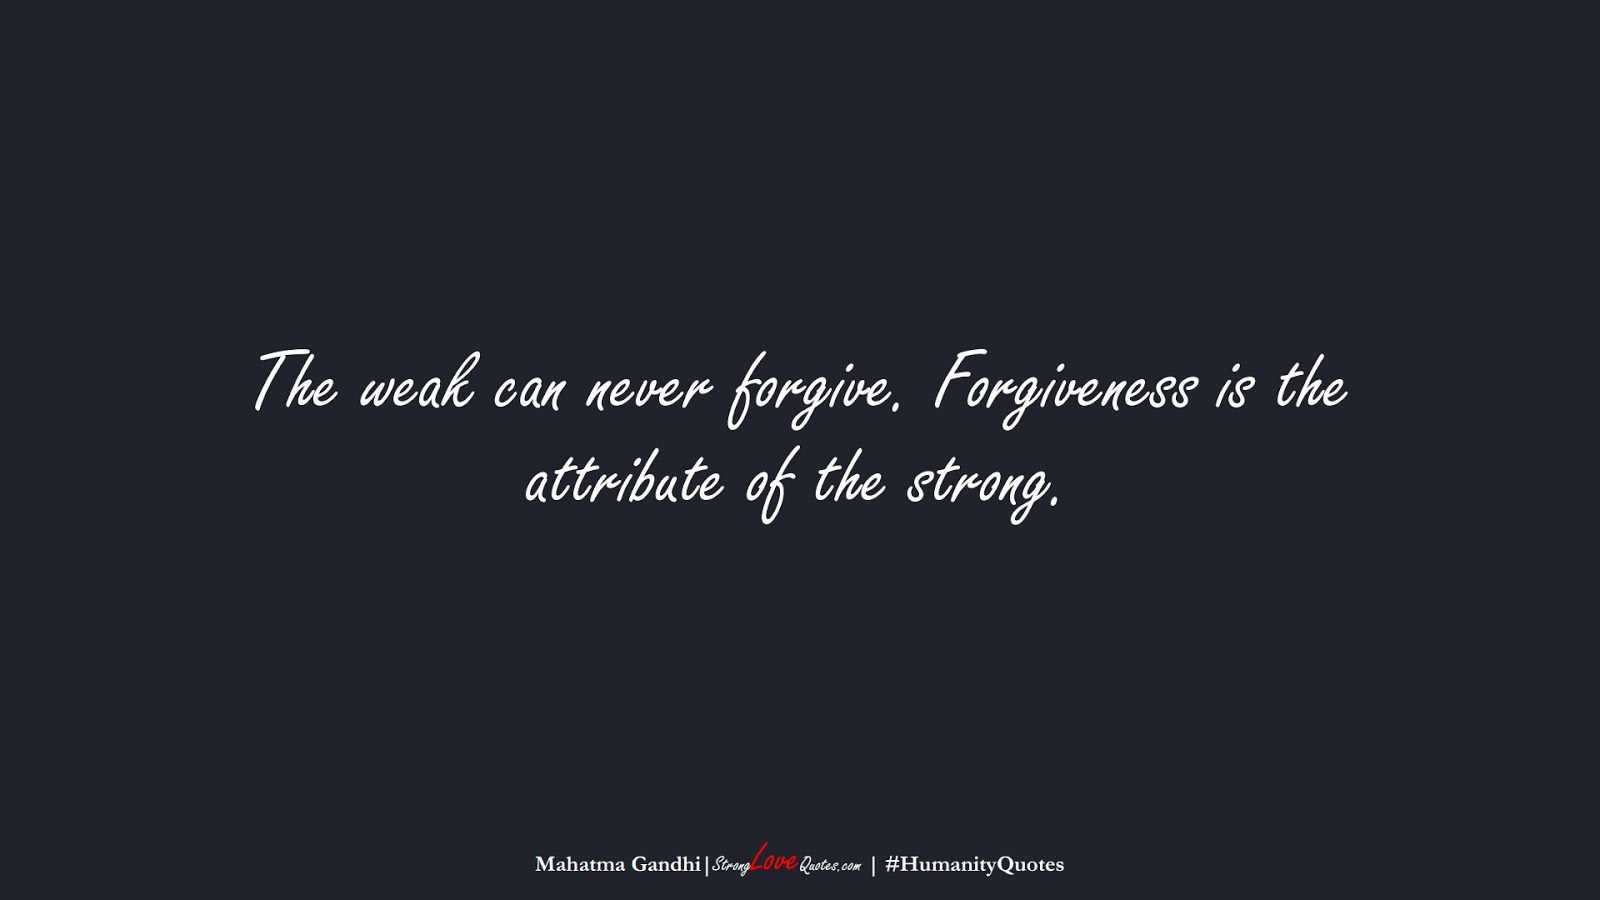 The weak can never forgive. Forgiveness is the attribute of the strong. (Mahatma Gandhi);  #HumanityQuotes